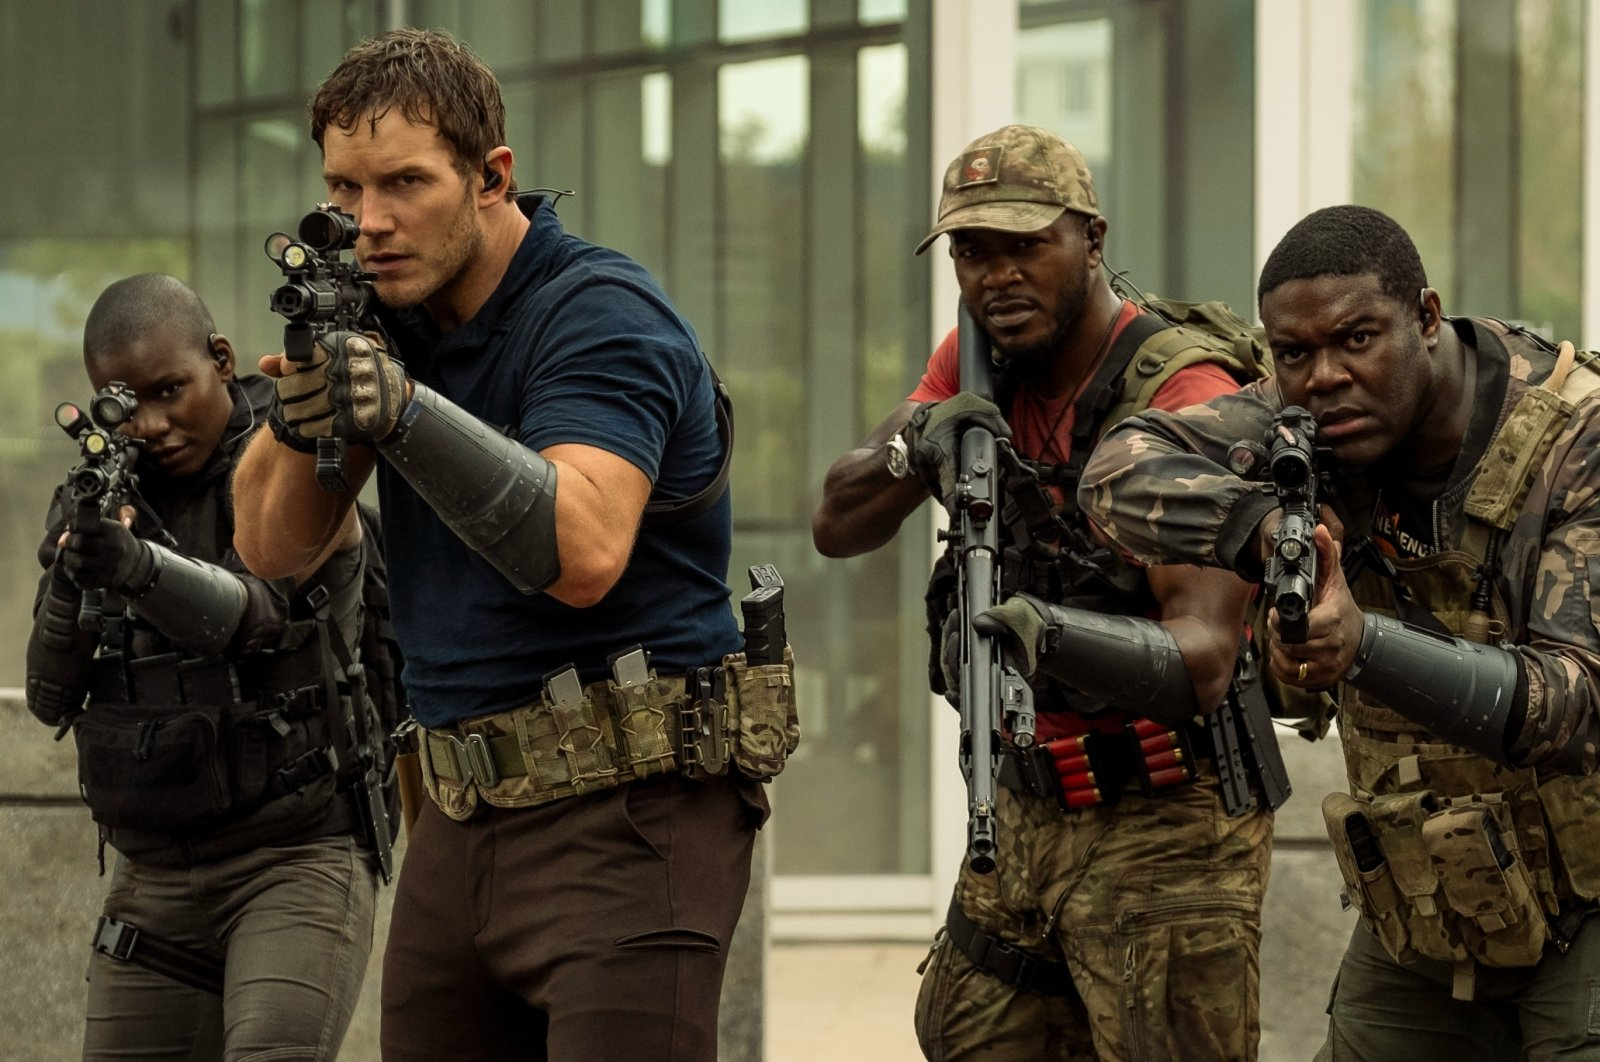 """Chris Pratt (C-L), Edwin Hodge (C-R) and Sam Richardson (R) walk together holding weapons, in a scene from """"The Tomorrow War."""" (Amazon via AP)"""